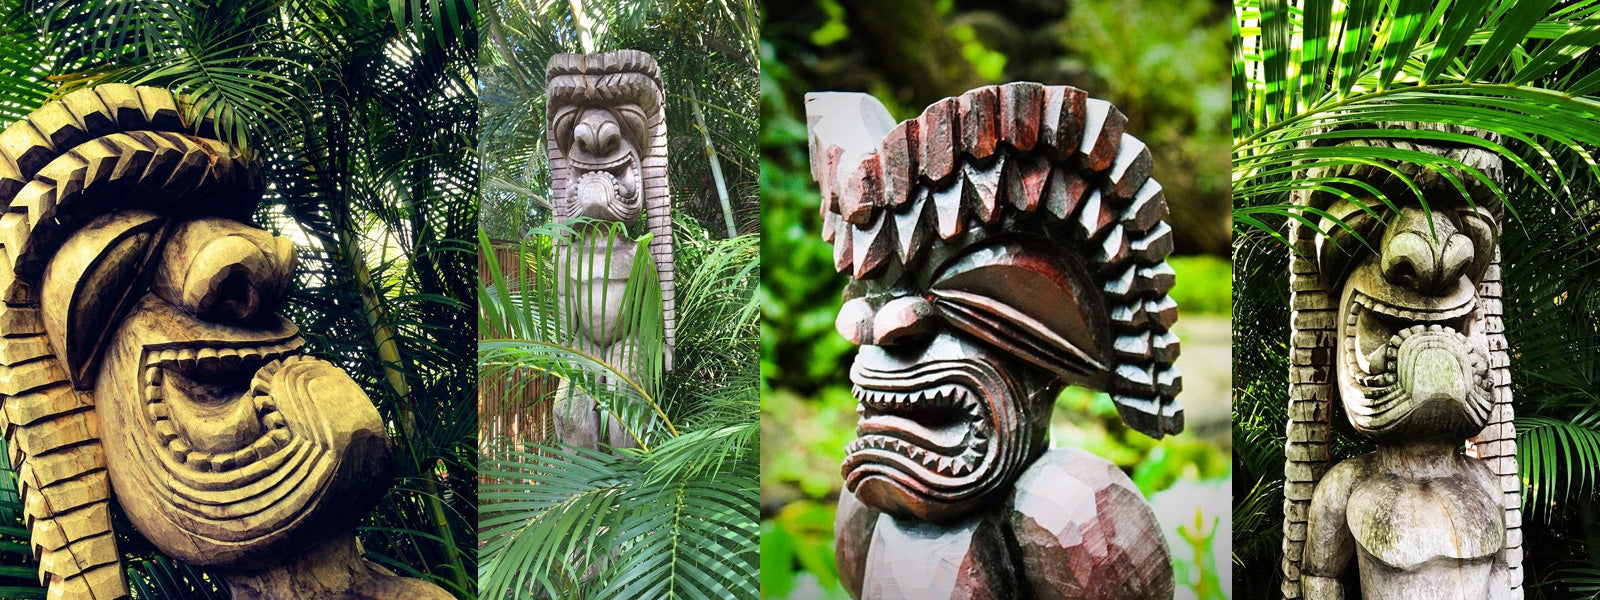 Tiki Gods of Hawaii - Makana Hut